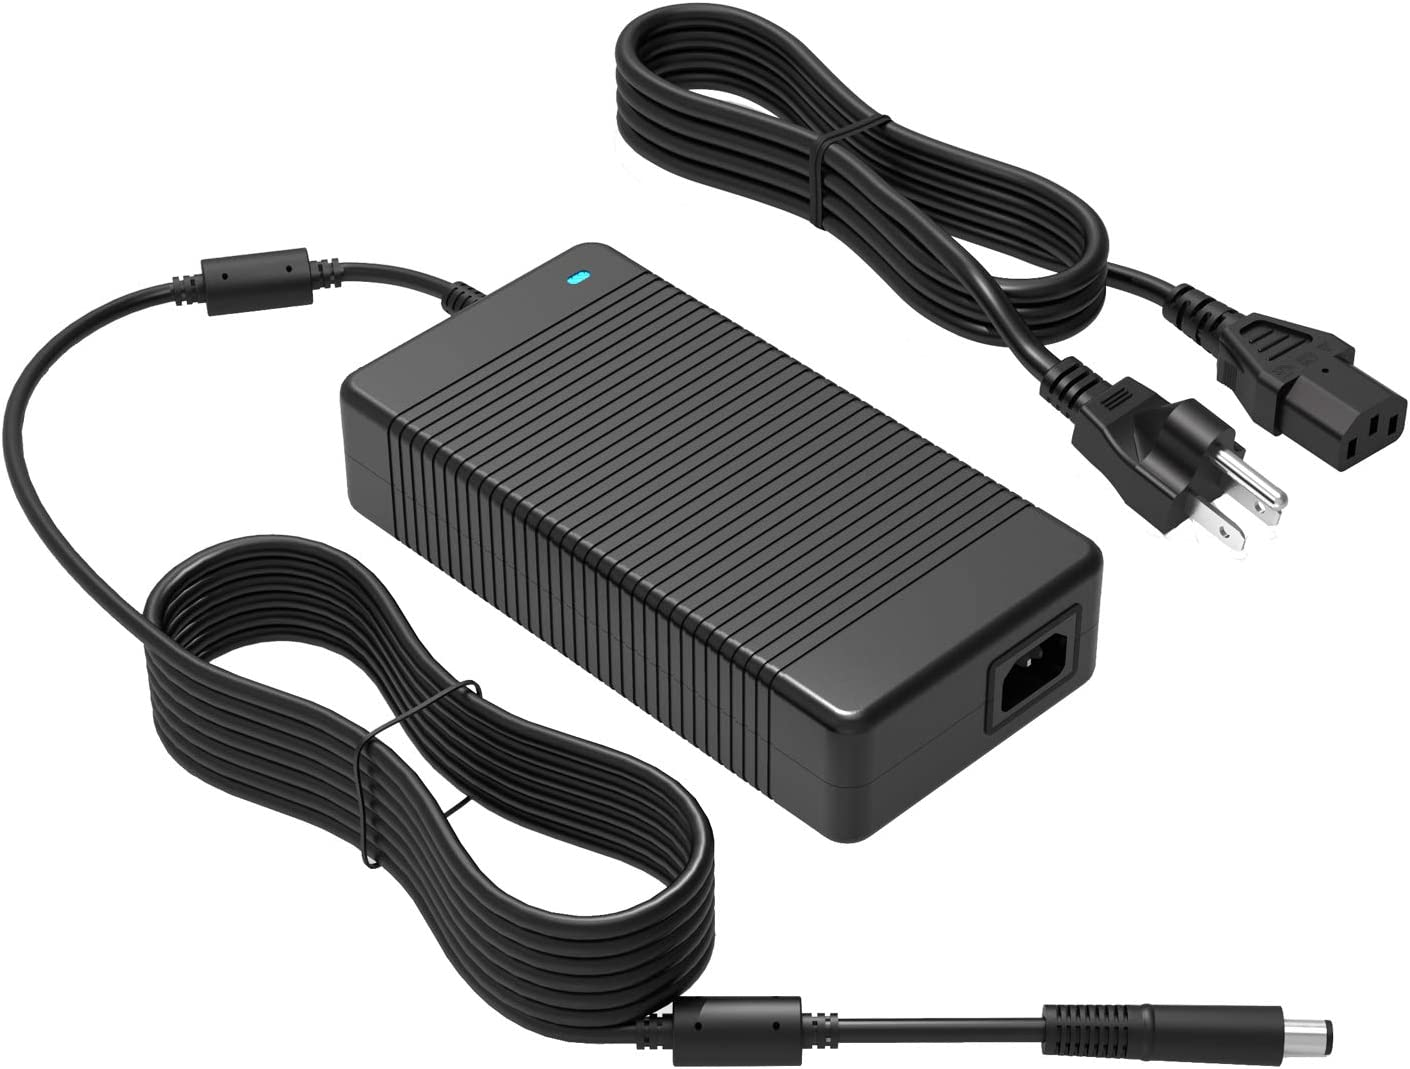 330W 19.5V 16.9A Alienware Power Adapter AC Charger Fit for Dell Alienware X51 X51 R2, M18x M18x R1, R2, R3, DA330PM111 M18X-0143 XM3C3 331-2429 320-2269 Laptop Replacement Power Supply Cord